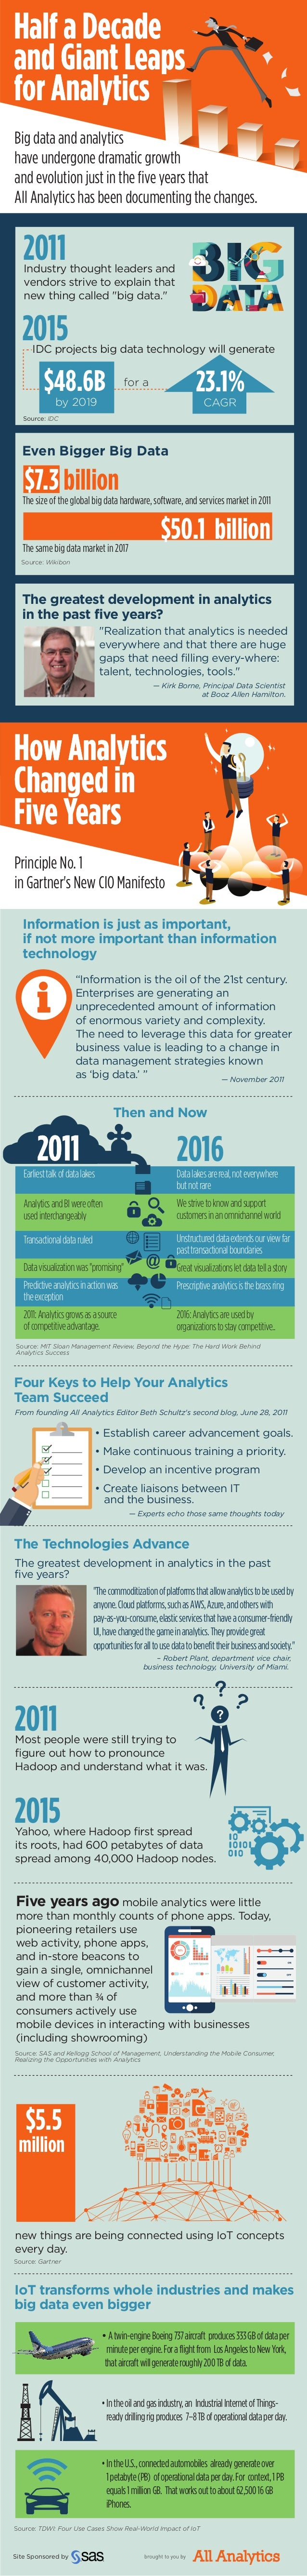 Half a Decade and Giant Leaps for Analytics Half a Decade and Giant Leaps for Analytics How Analytics Changed in Five Year...